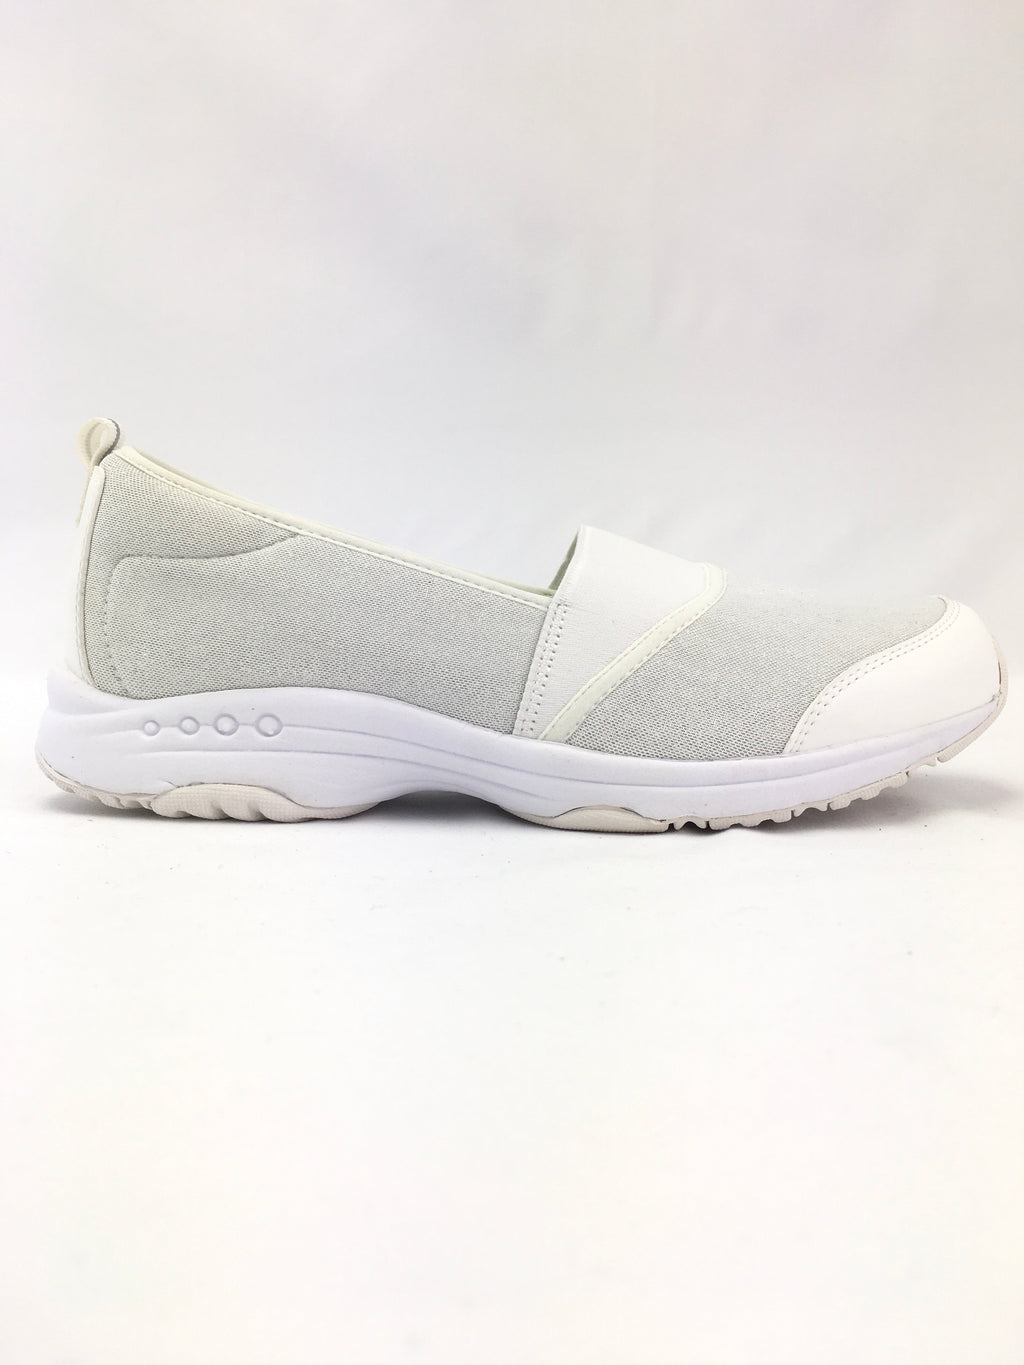 Easy Spirit Twist16 Shoe Size 9.5W